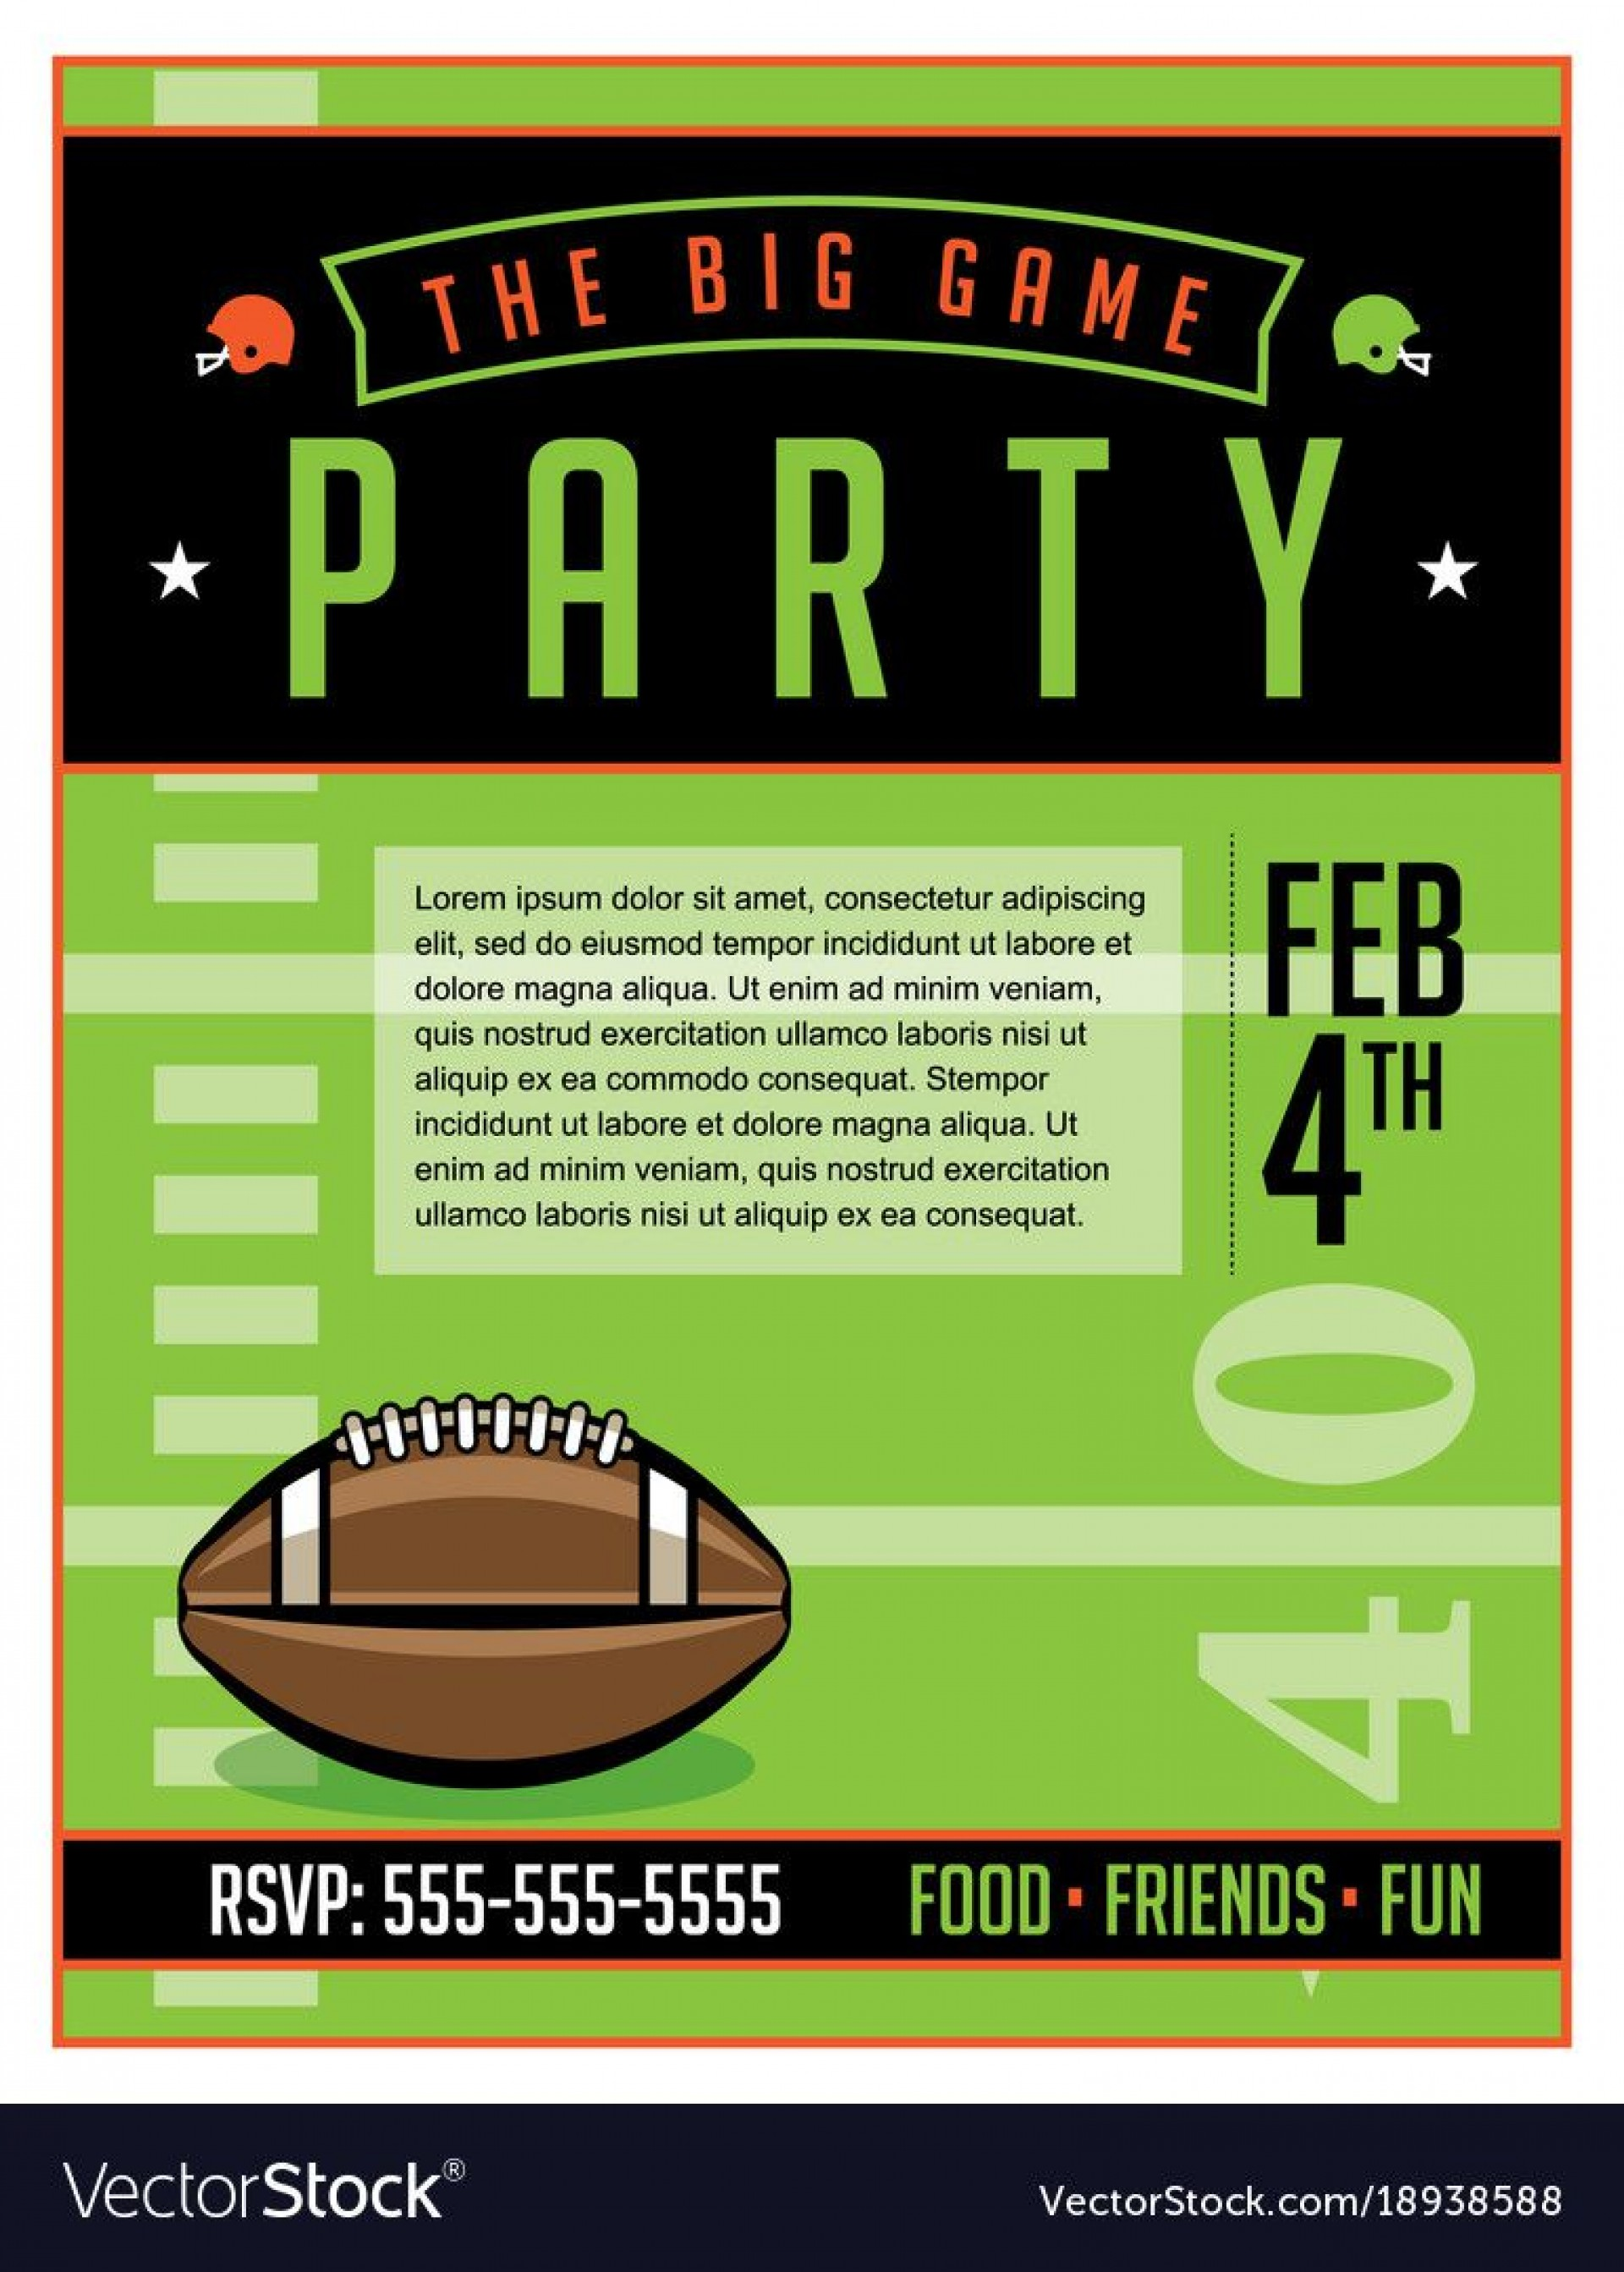 002 Surprising Free Tailgate Party Flyer Template Download Photo 1920